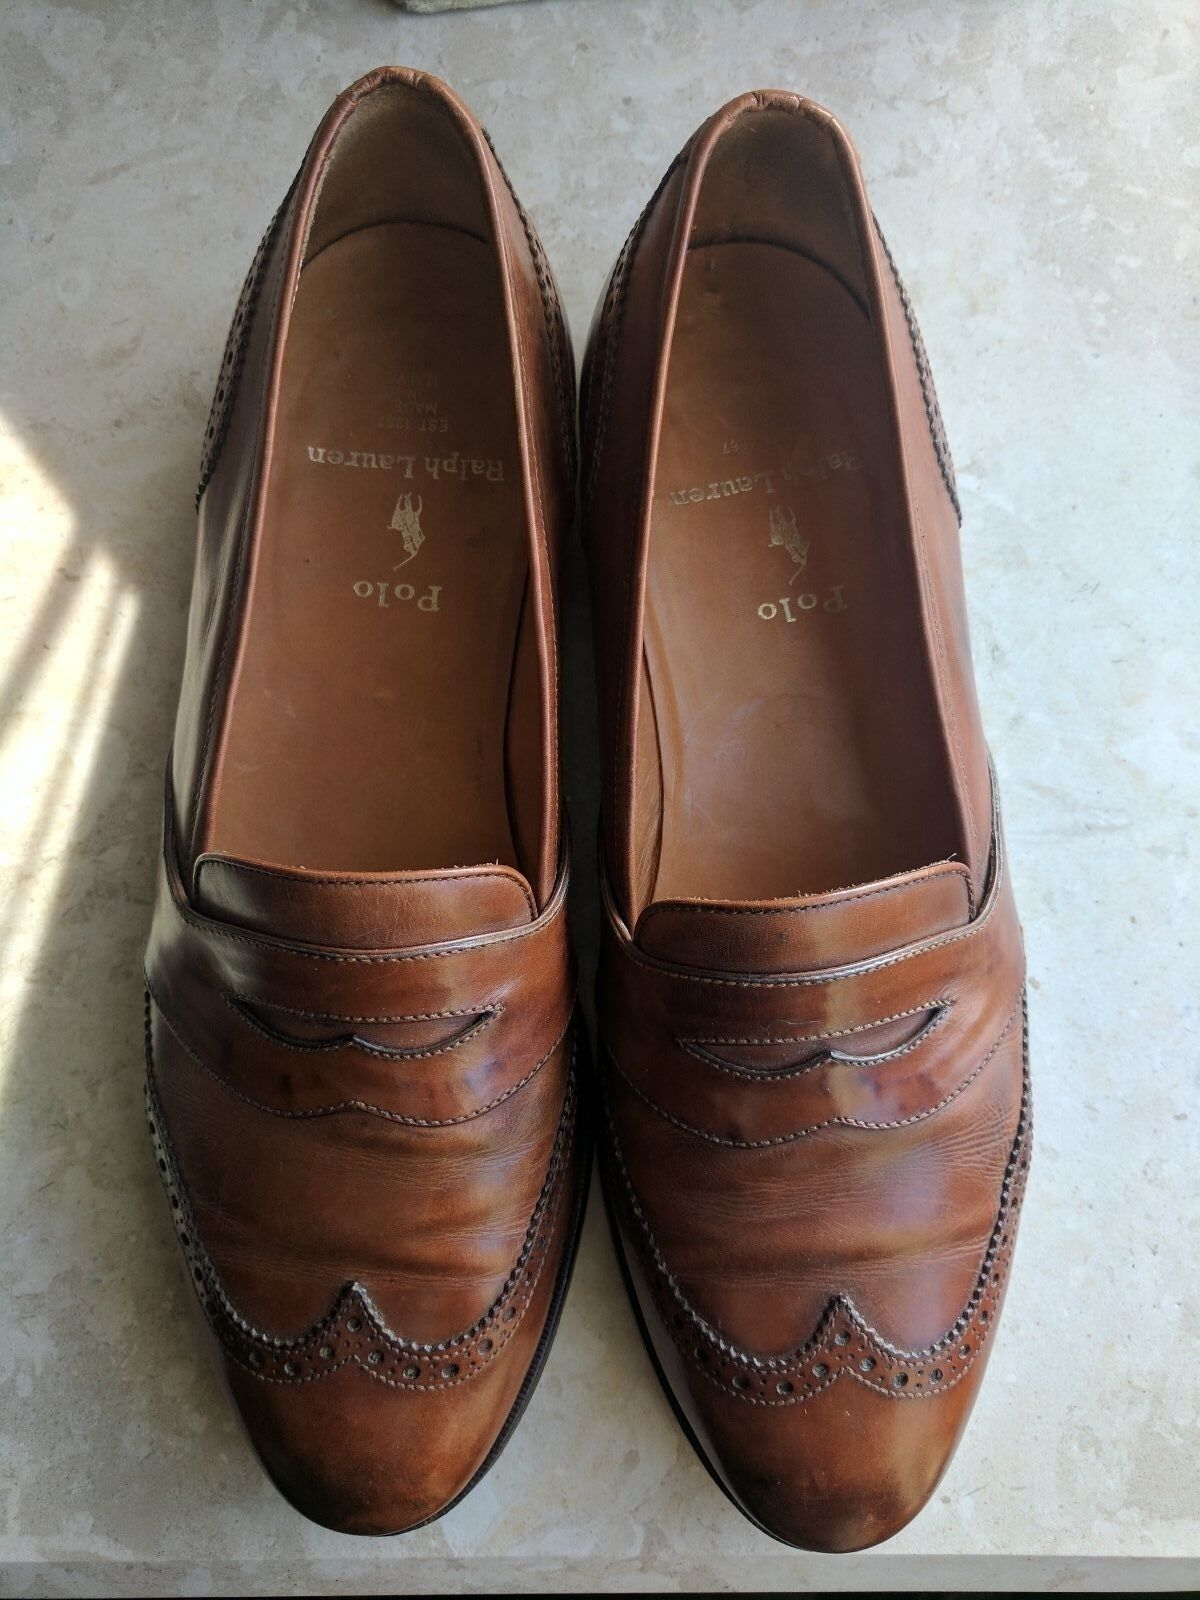 Polo Ralph Lauren Brown Italian Leather Loafers Sz 8D  Handsome shoes